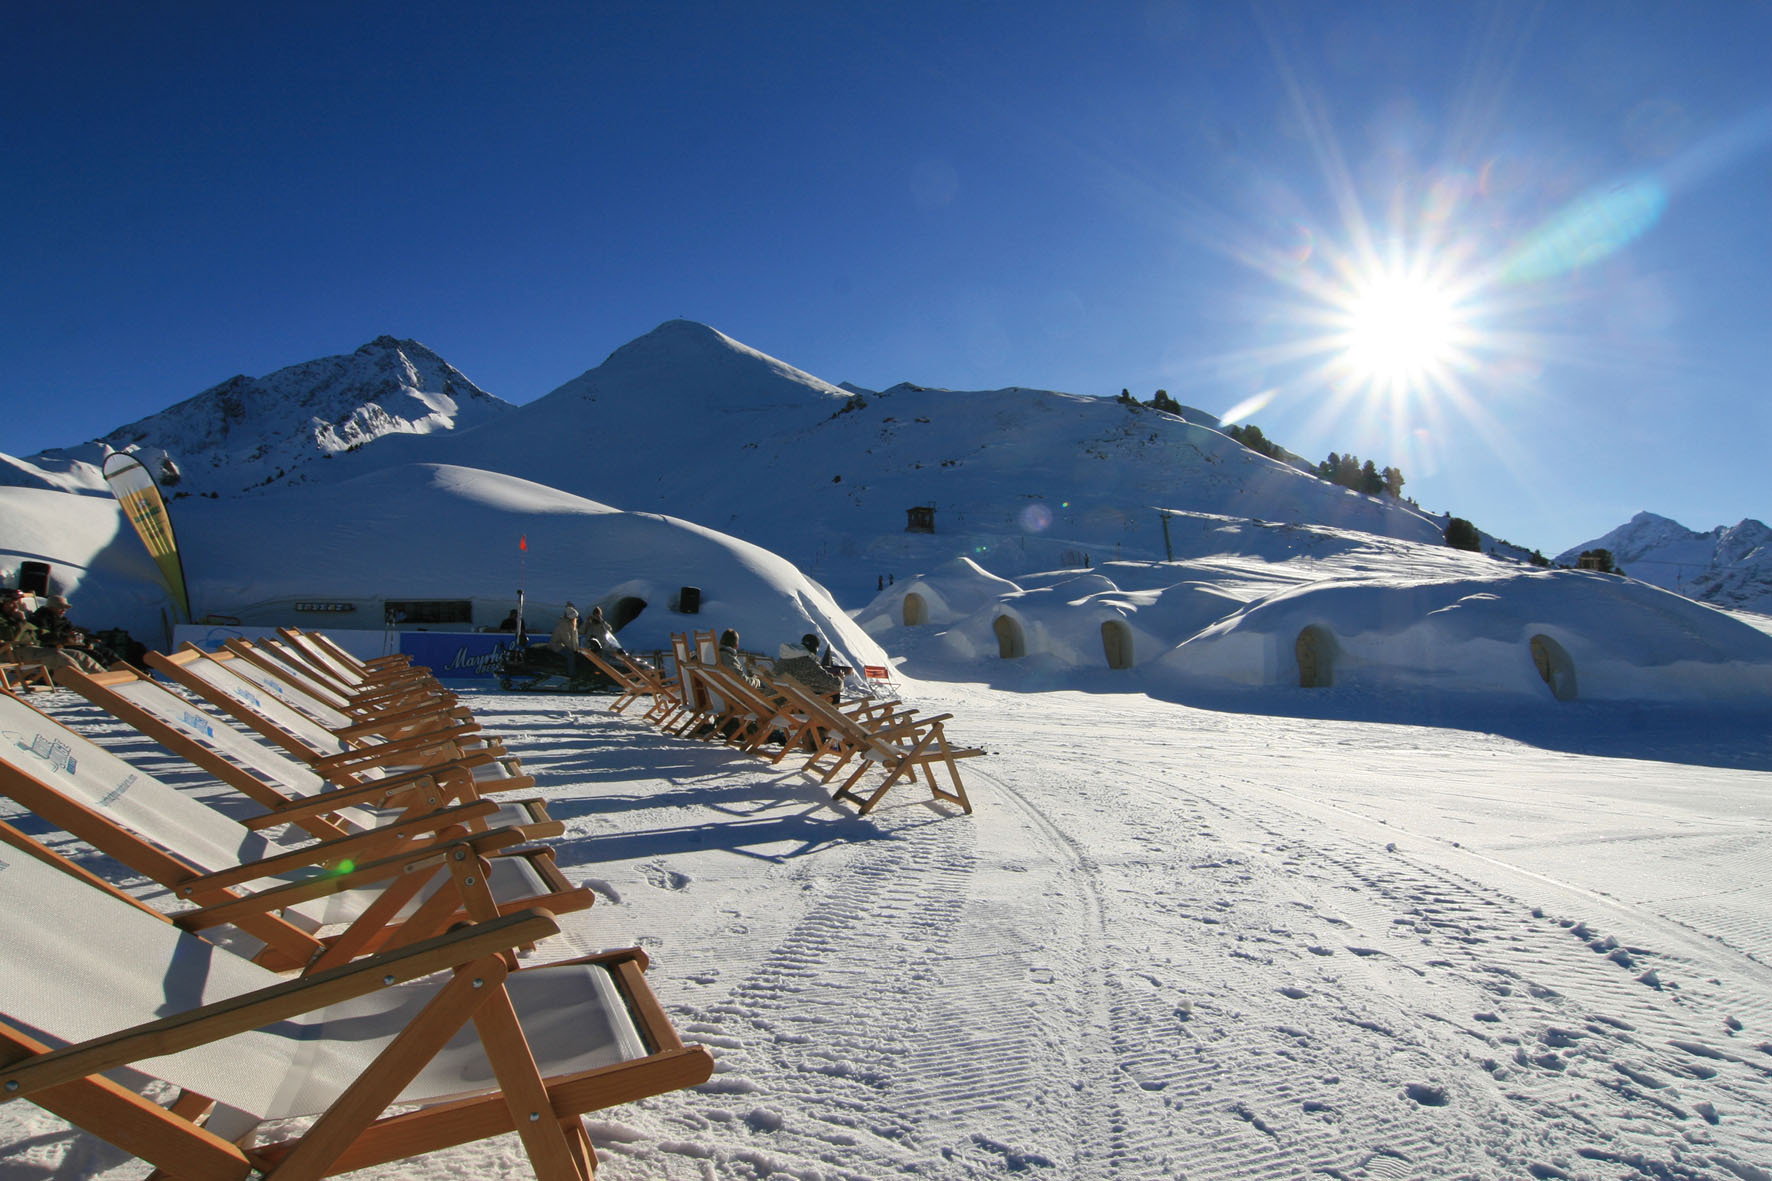 ski resort of Mayrhofen Austria wallpapers and images   wallpapers 1772x1181